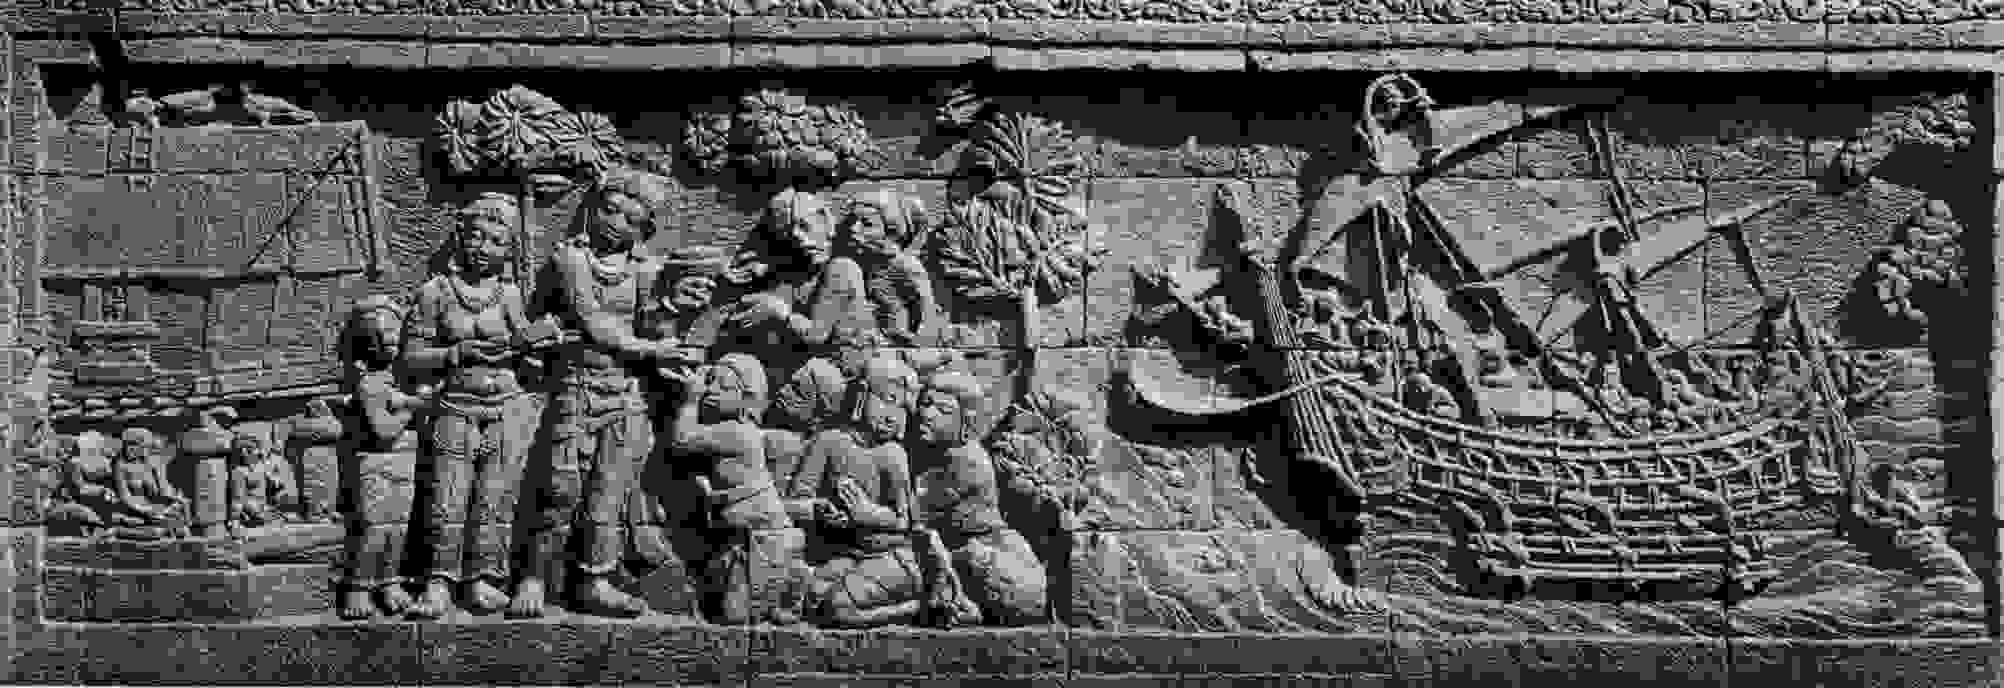 Relief panel of a ship | Source: Source: kemdikbud.go.id